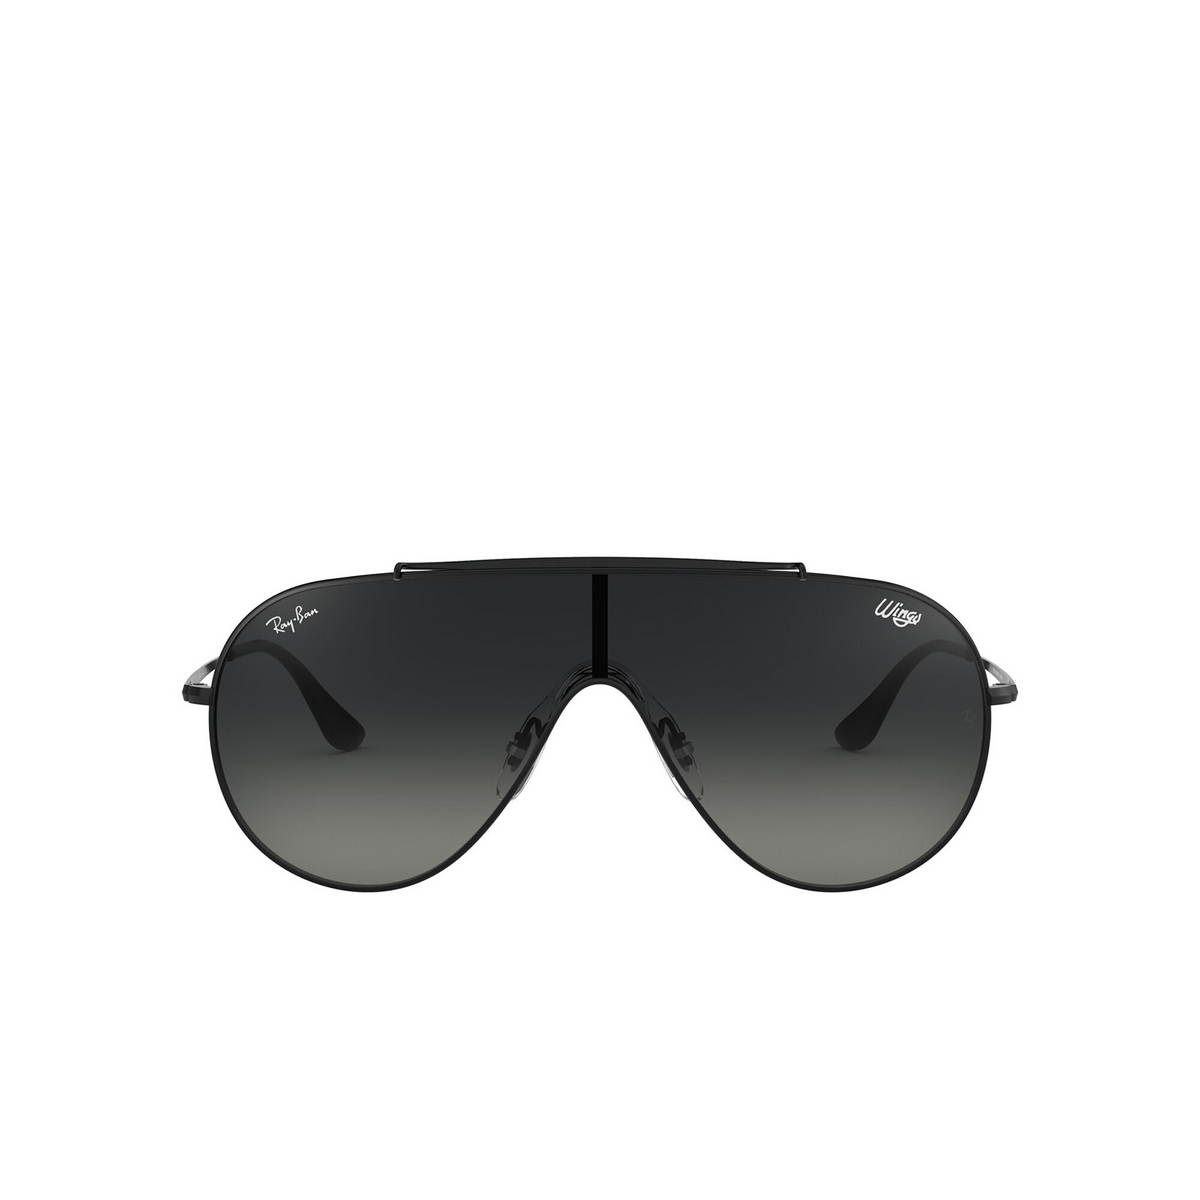 Ray-Ban® Aviator Sunglasses: Wings RB3597 color Black 002/11 - front view.